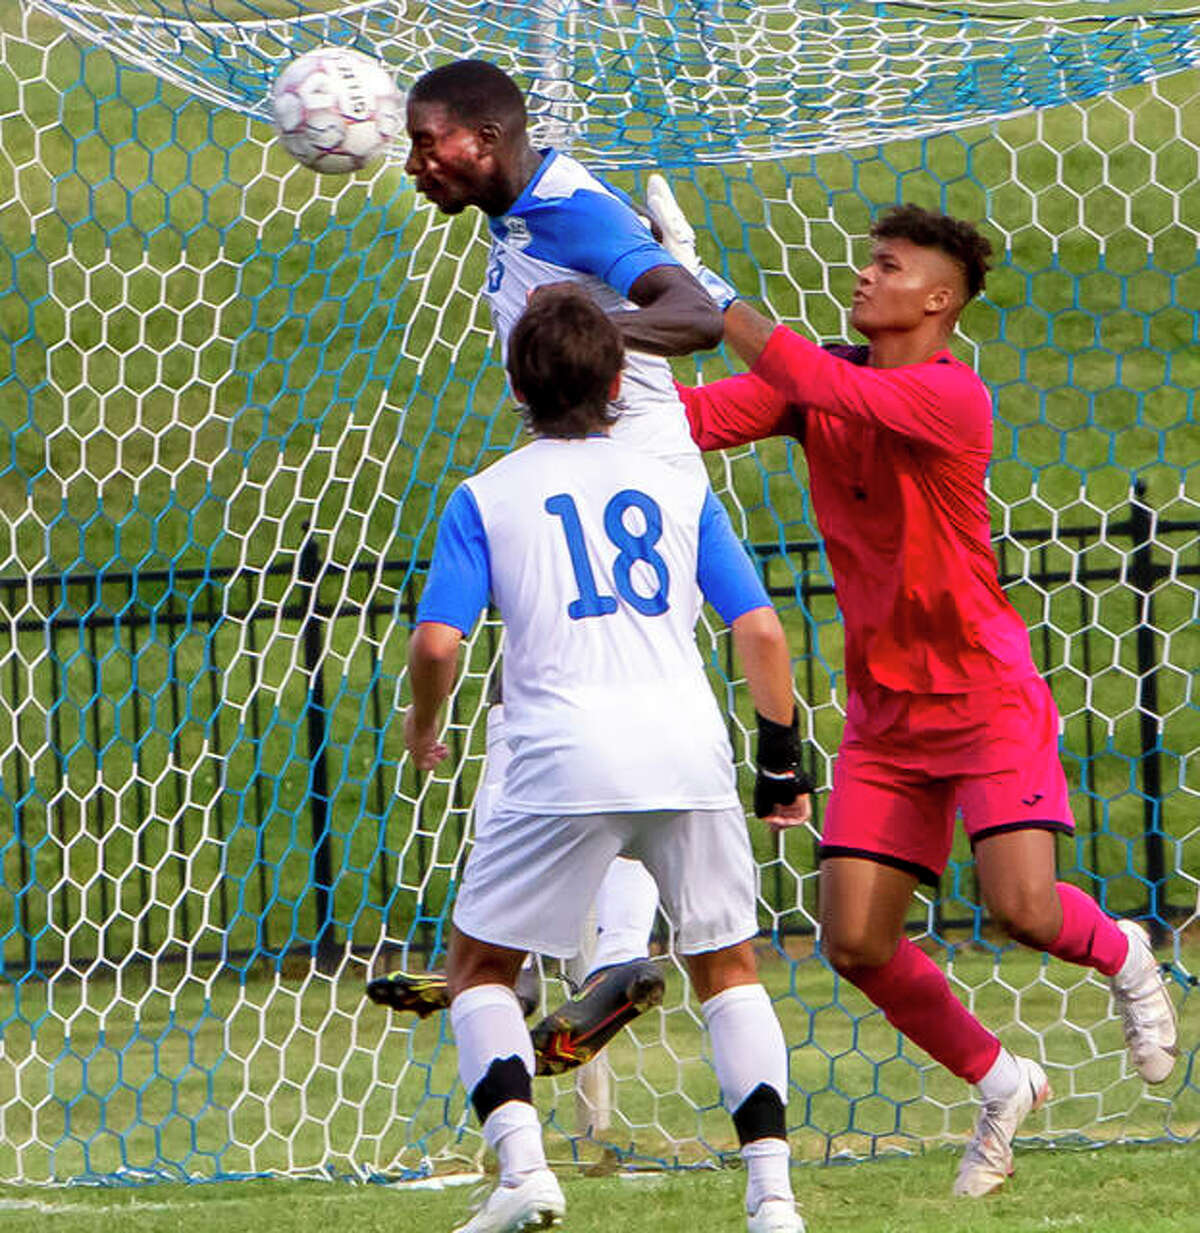 Jovanny Nsonga of LCCC heads the ball away from the Trailblazers' goal as LCCC goalie Eric Walker closes in. Also pictured is LCCC's Morgan Moina (18).